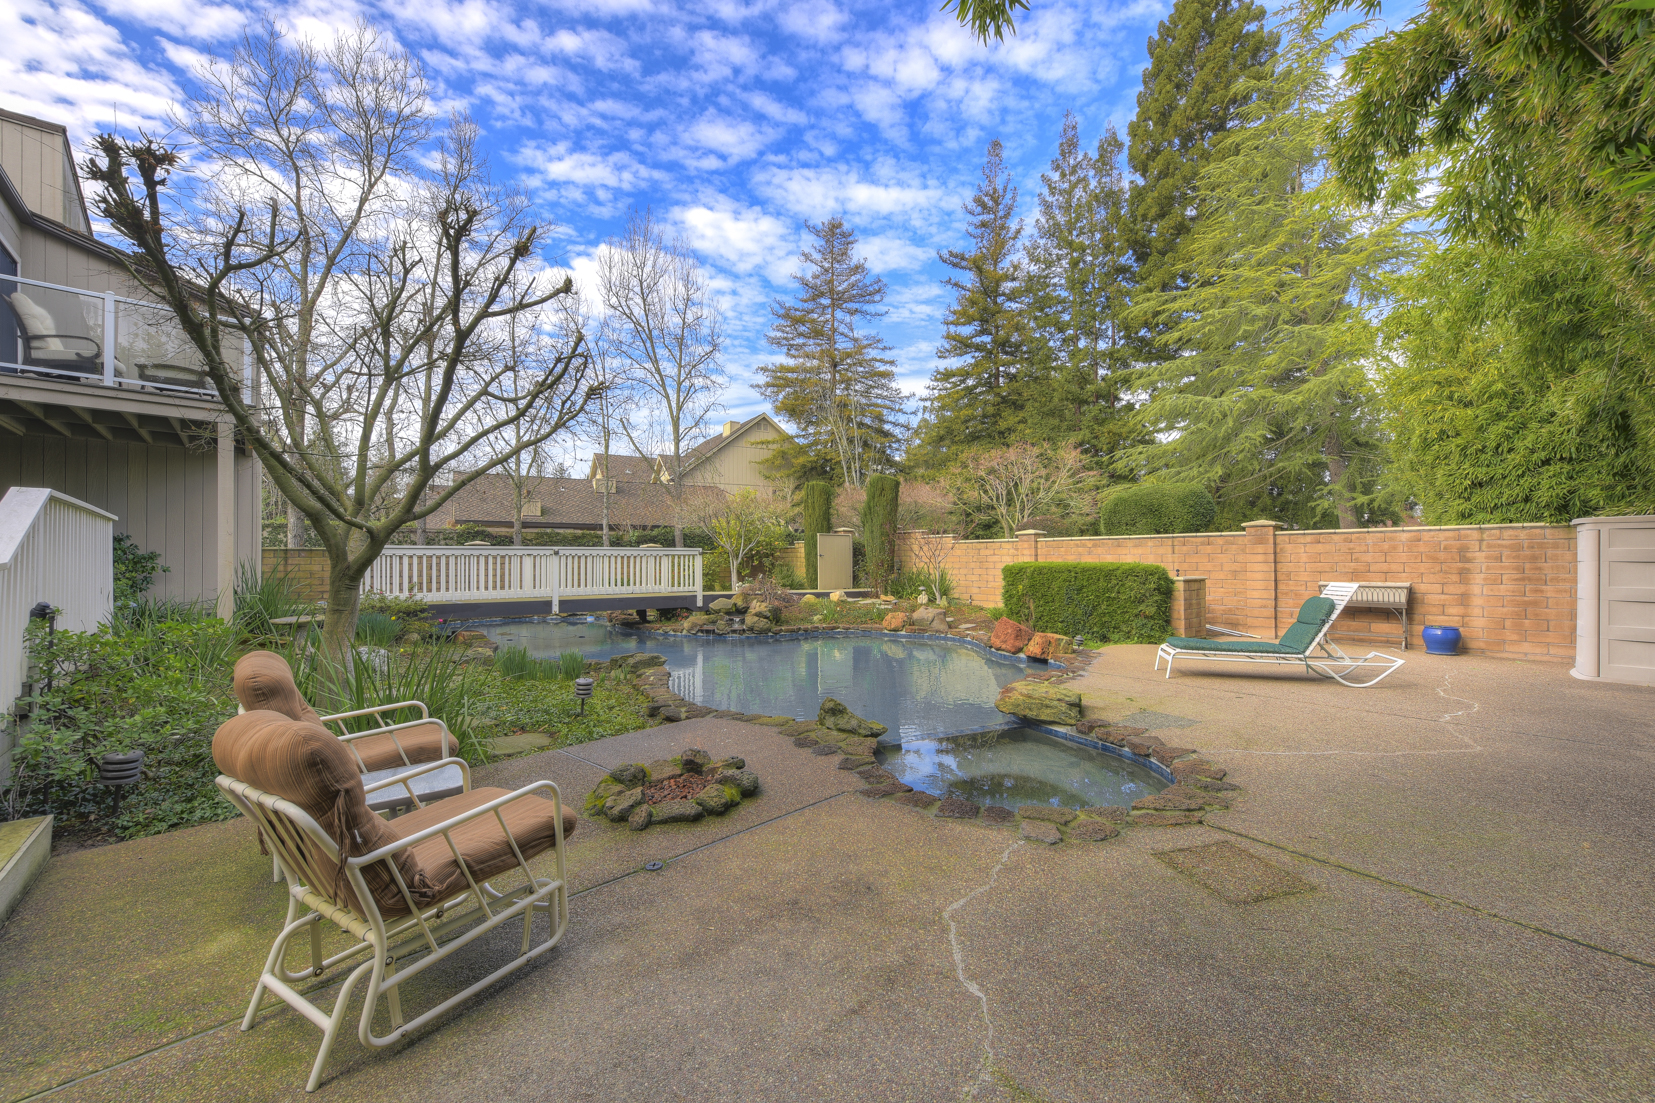 Lagoon style pool, spa and wood decking